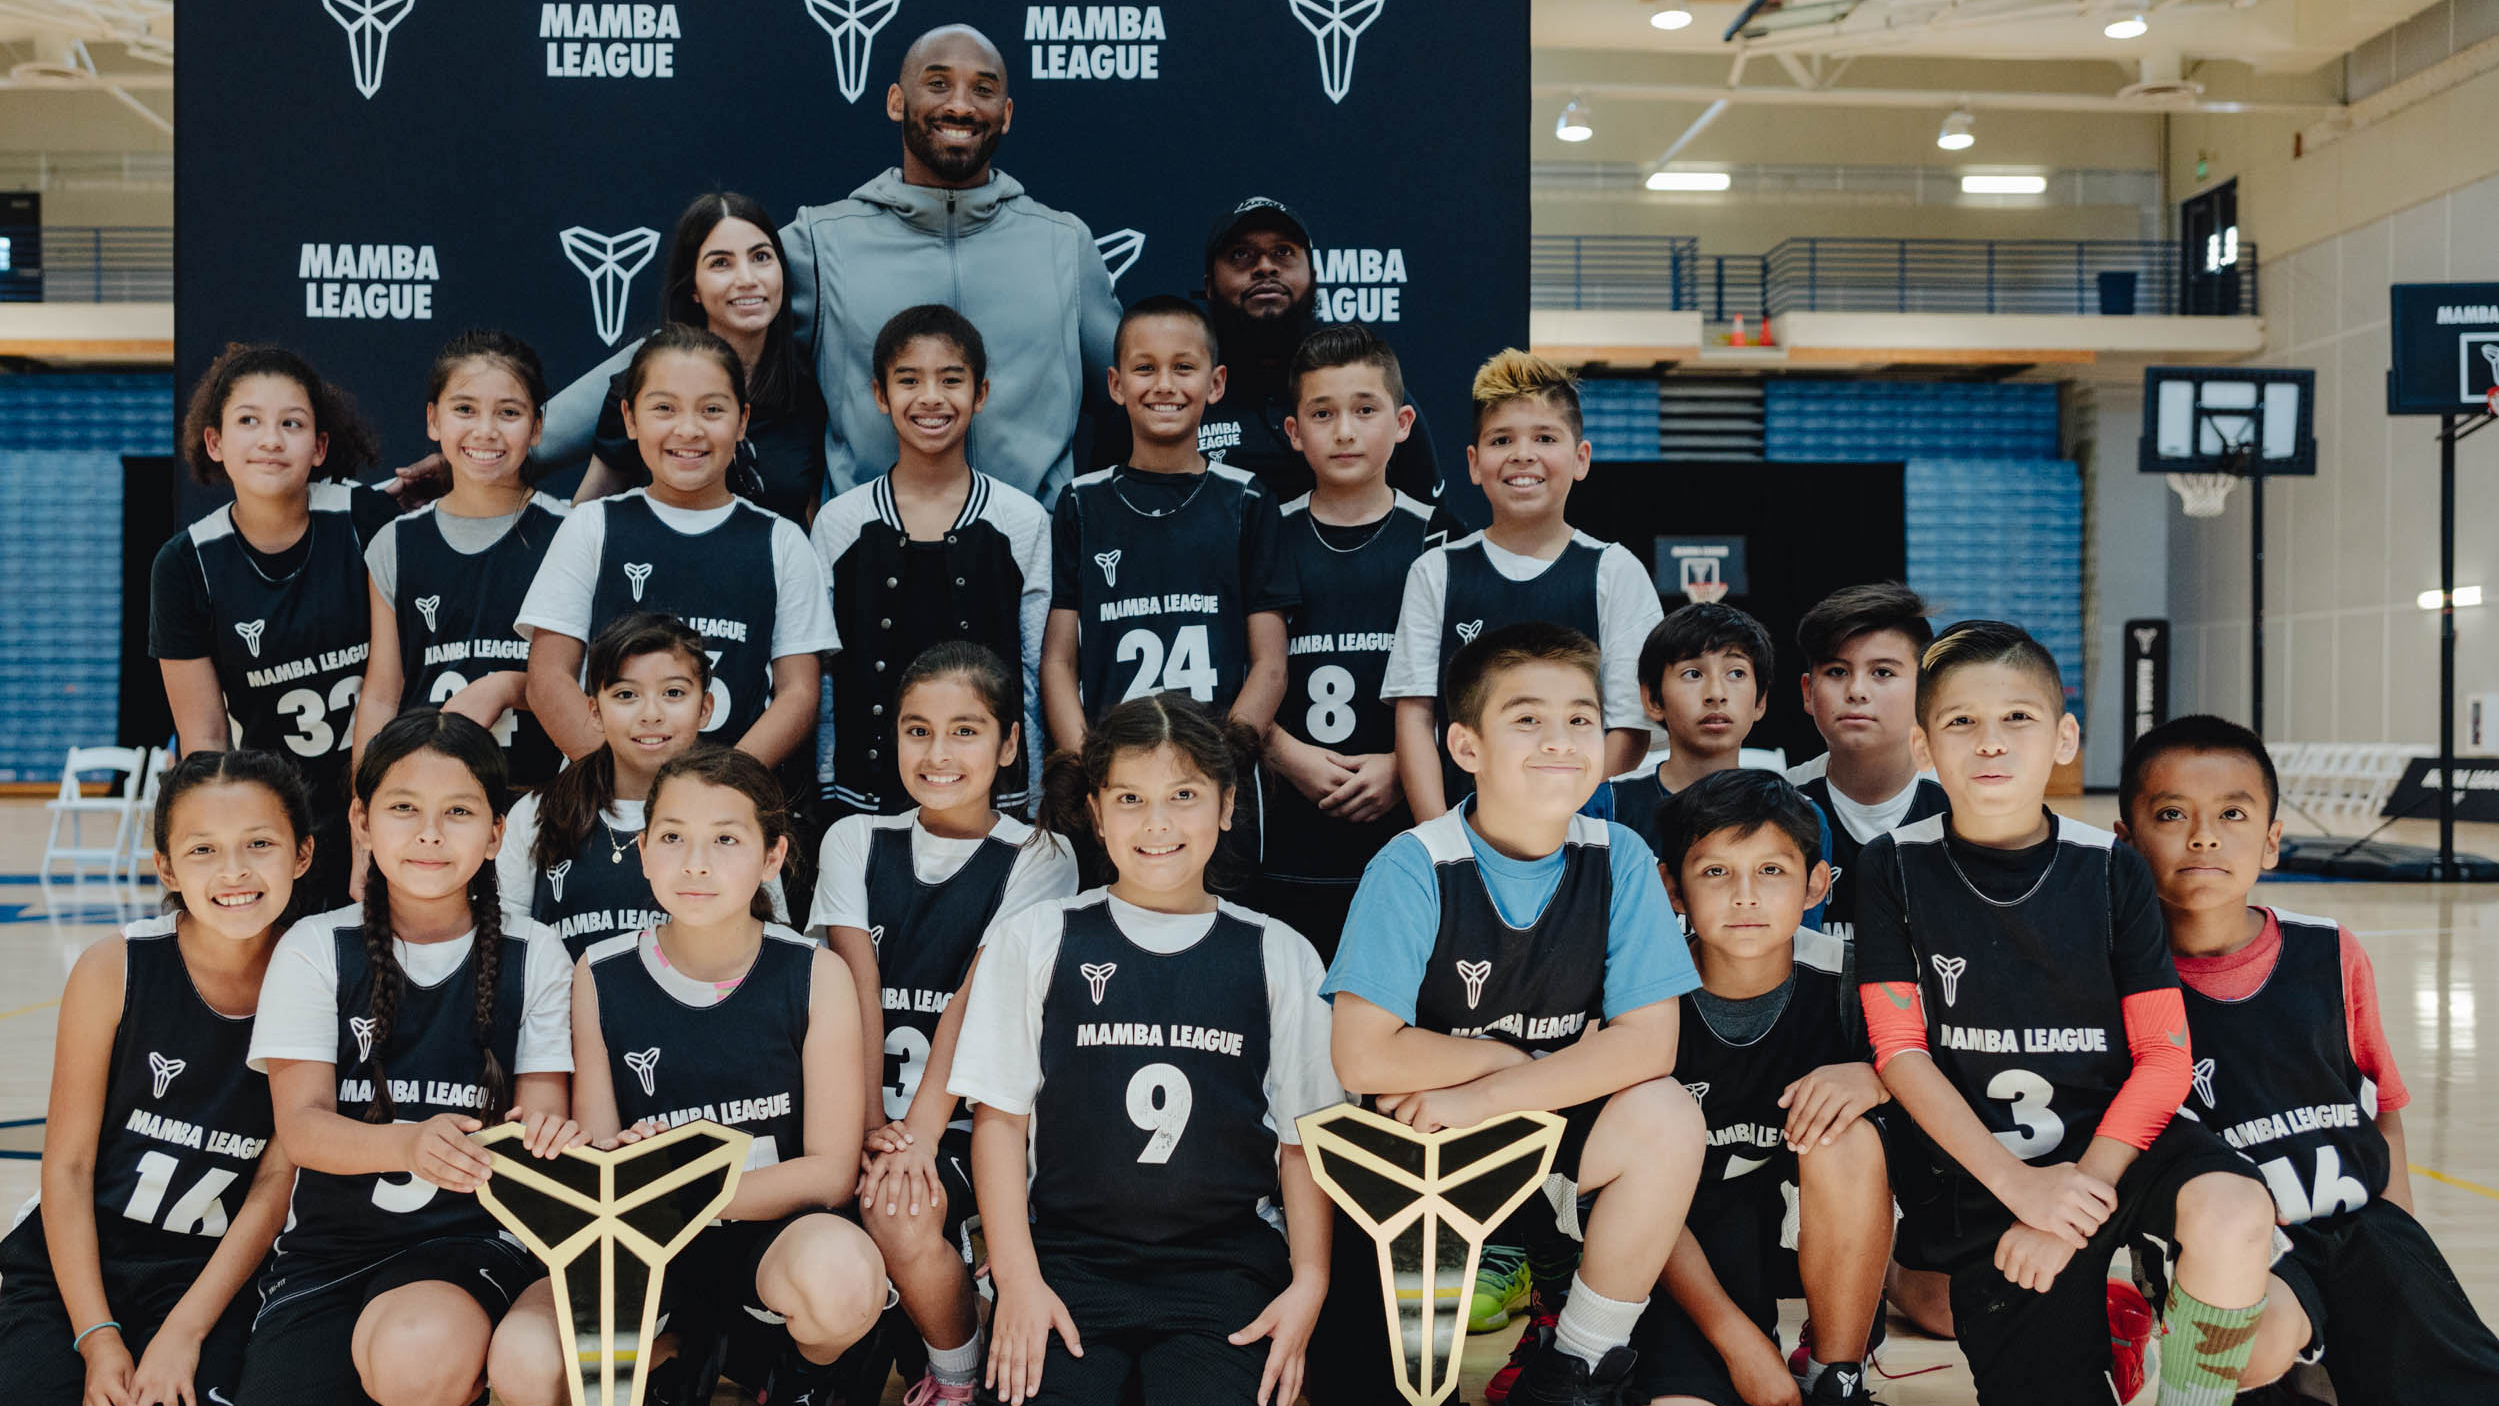 d32a819bc1a9 Kobe Bryant partners with Nike to create basketball program